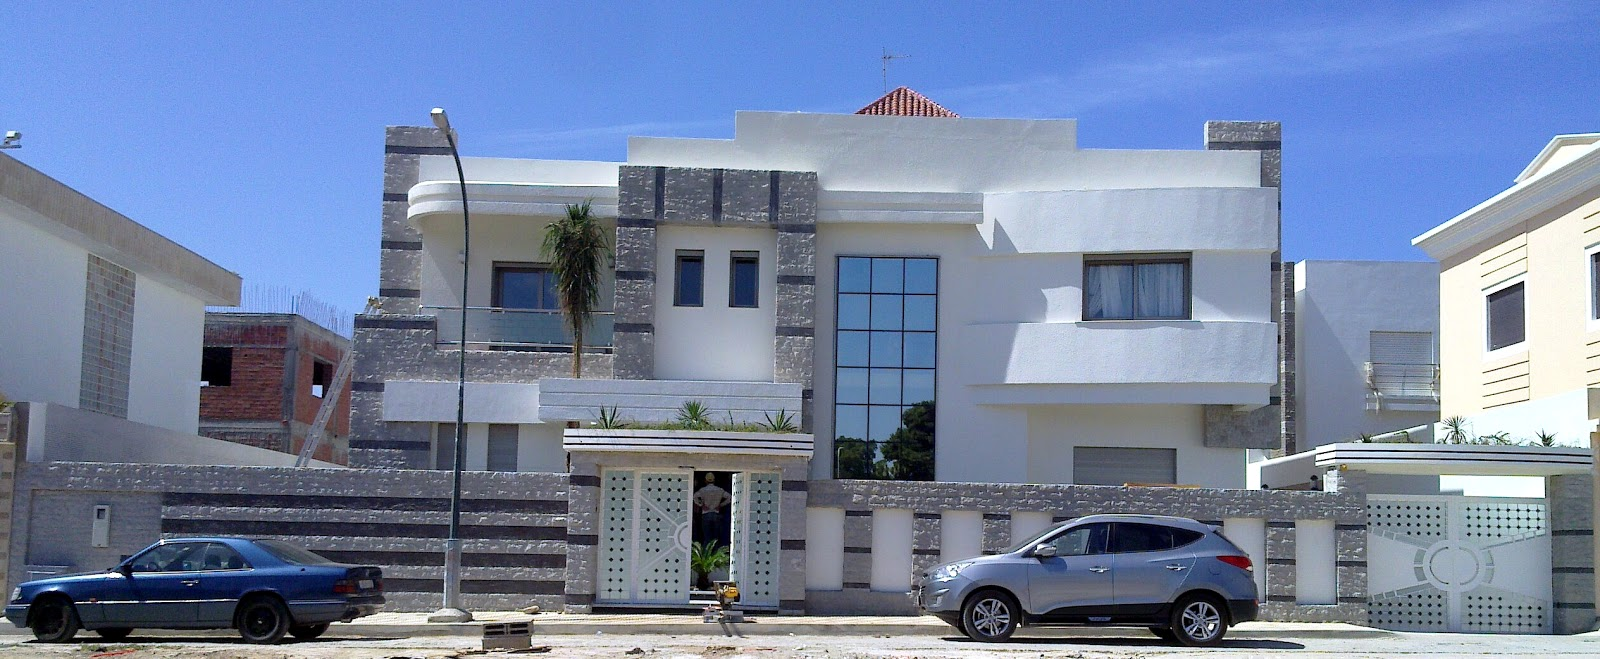 Architecture maison tunisie moderne 28 images design for Astuces maison tunisie